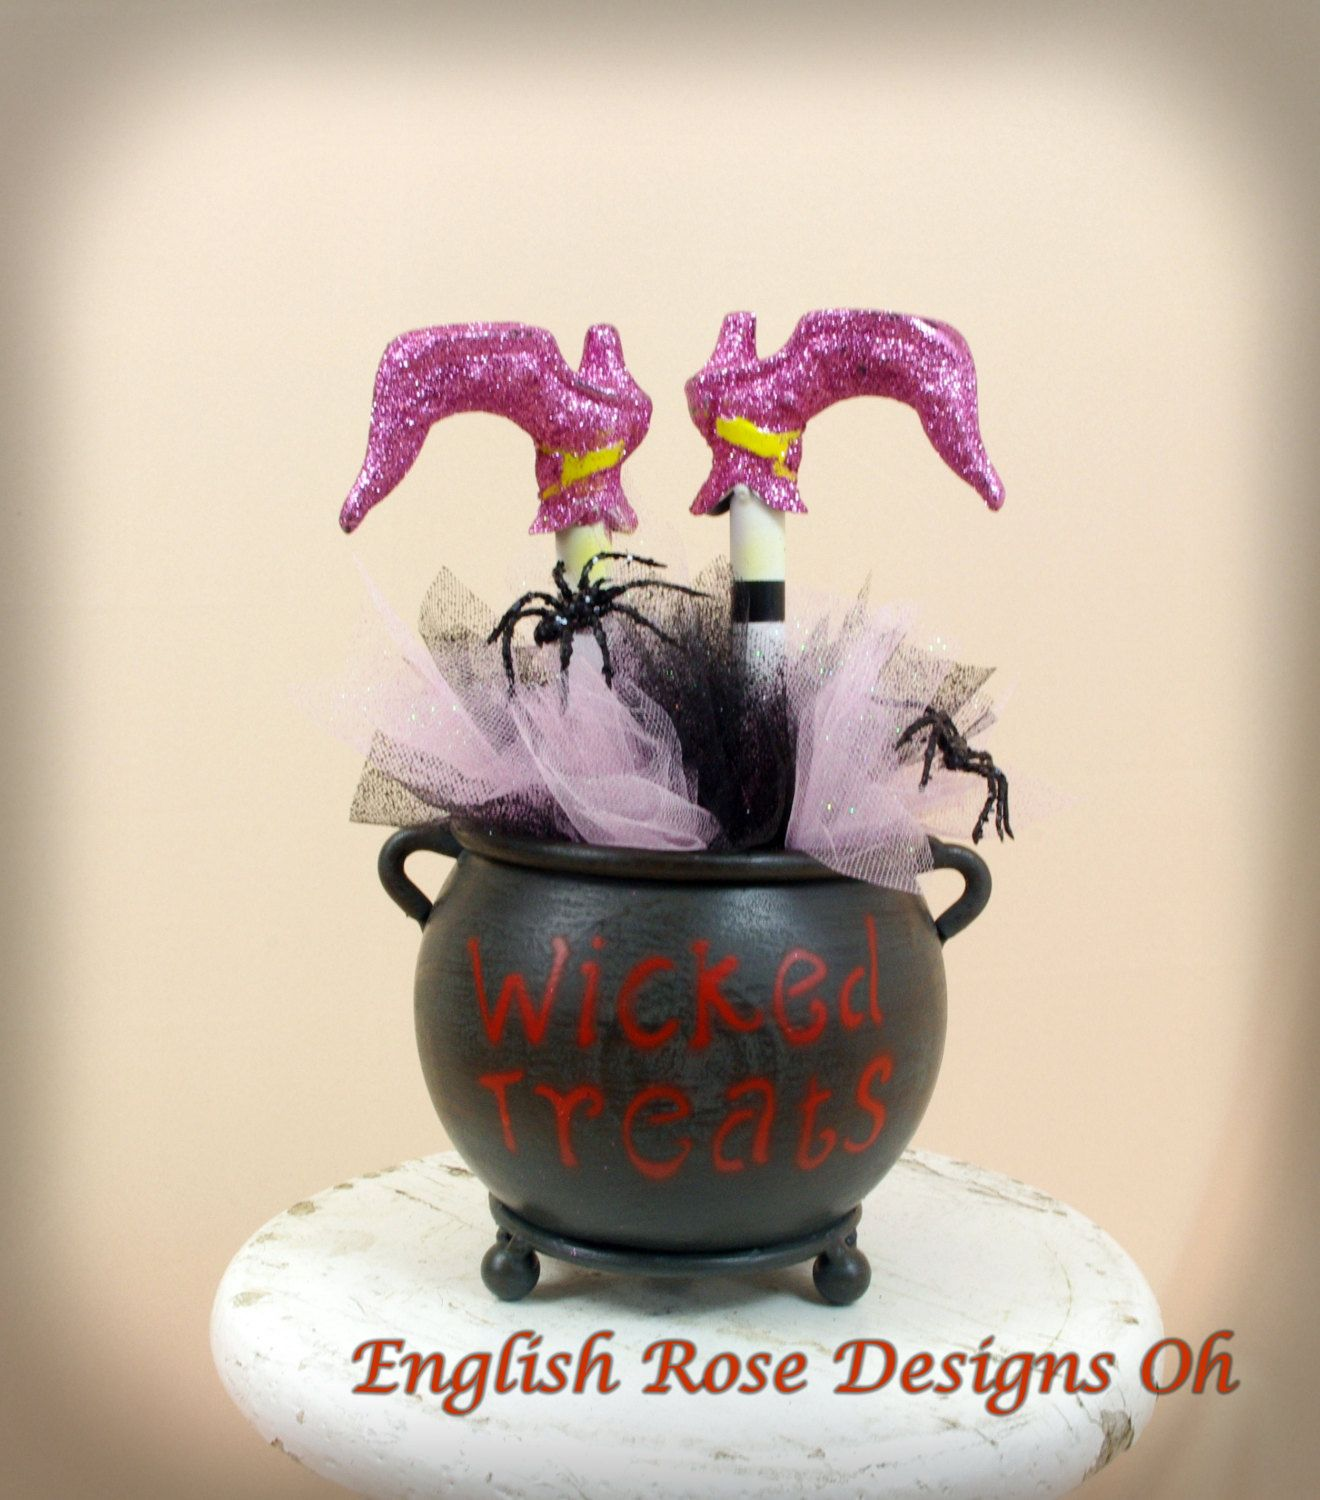 upside down wicked witch of the east in a cauldron witches cauldron witch boot halloween centerpieceshalloween decorationshalloween - Halloween Centerpieces